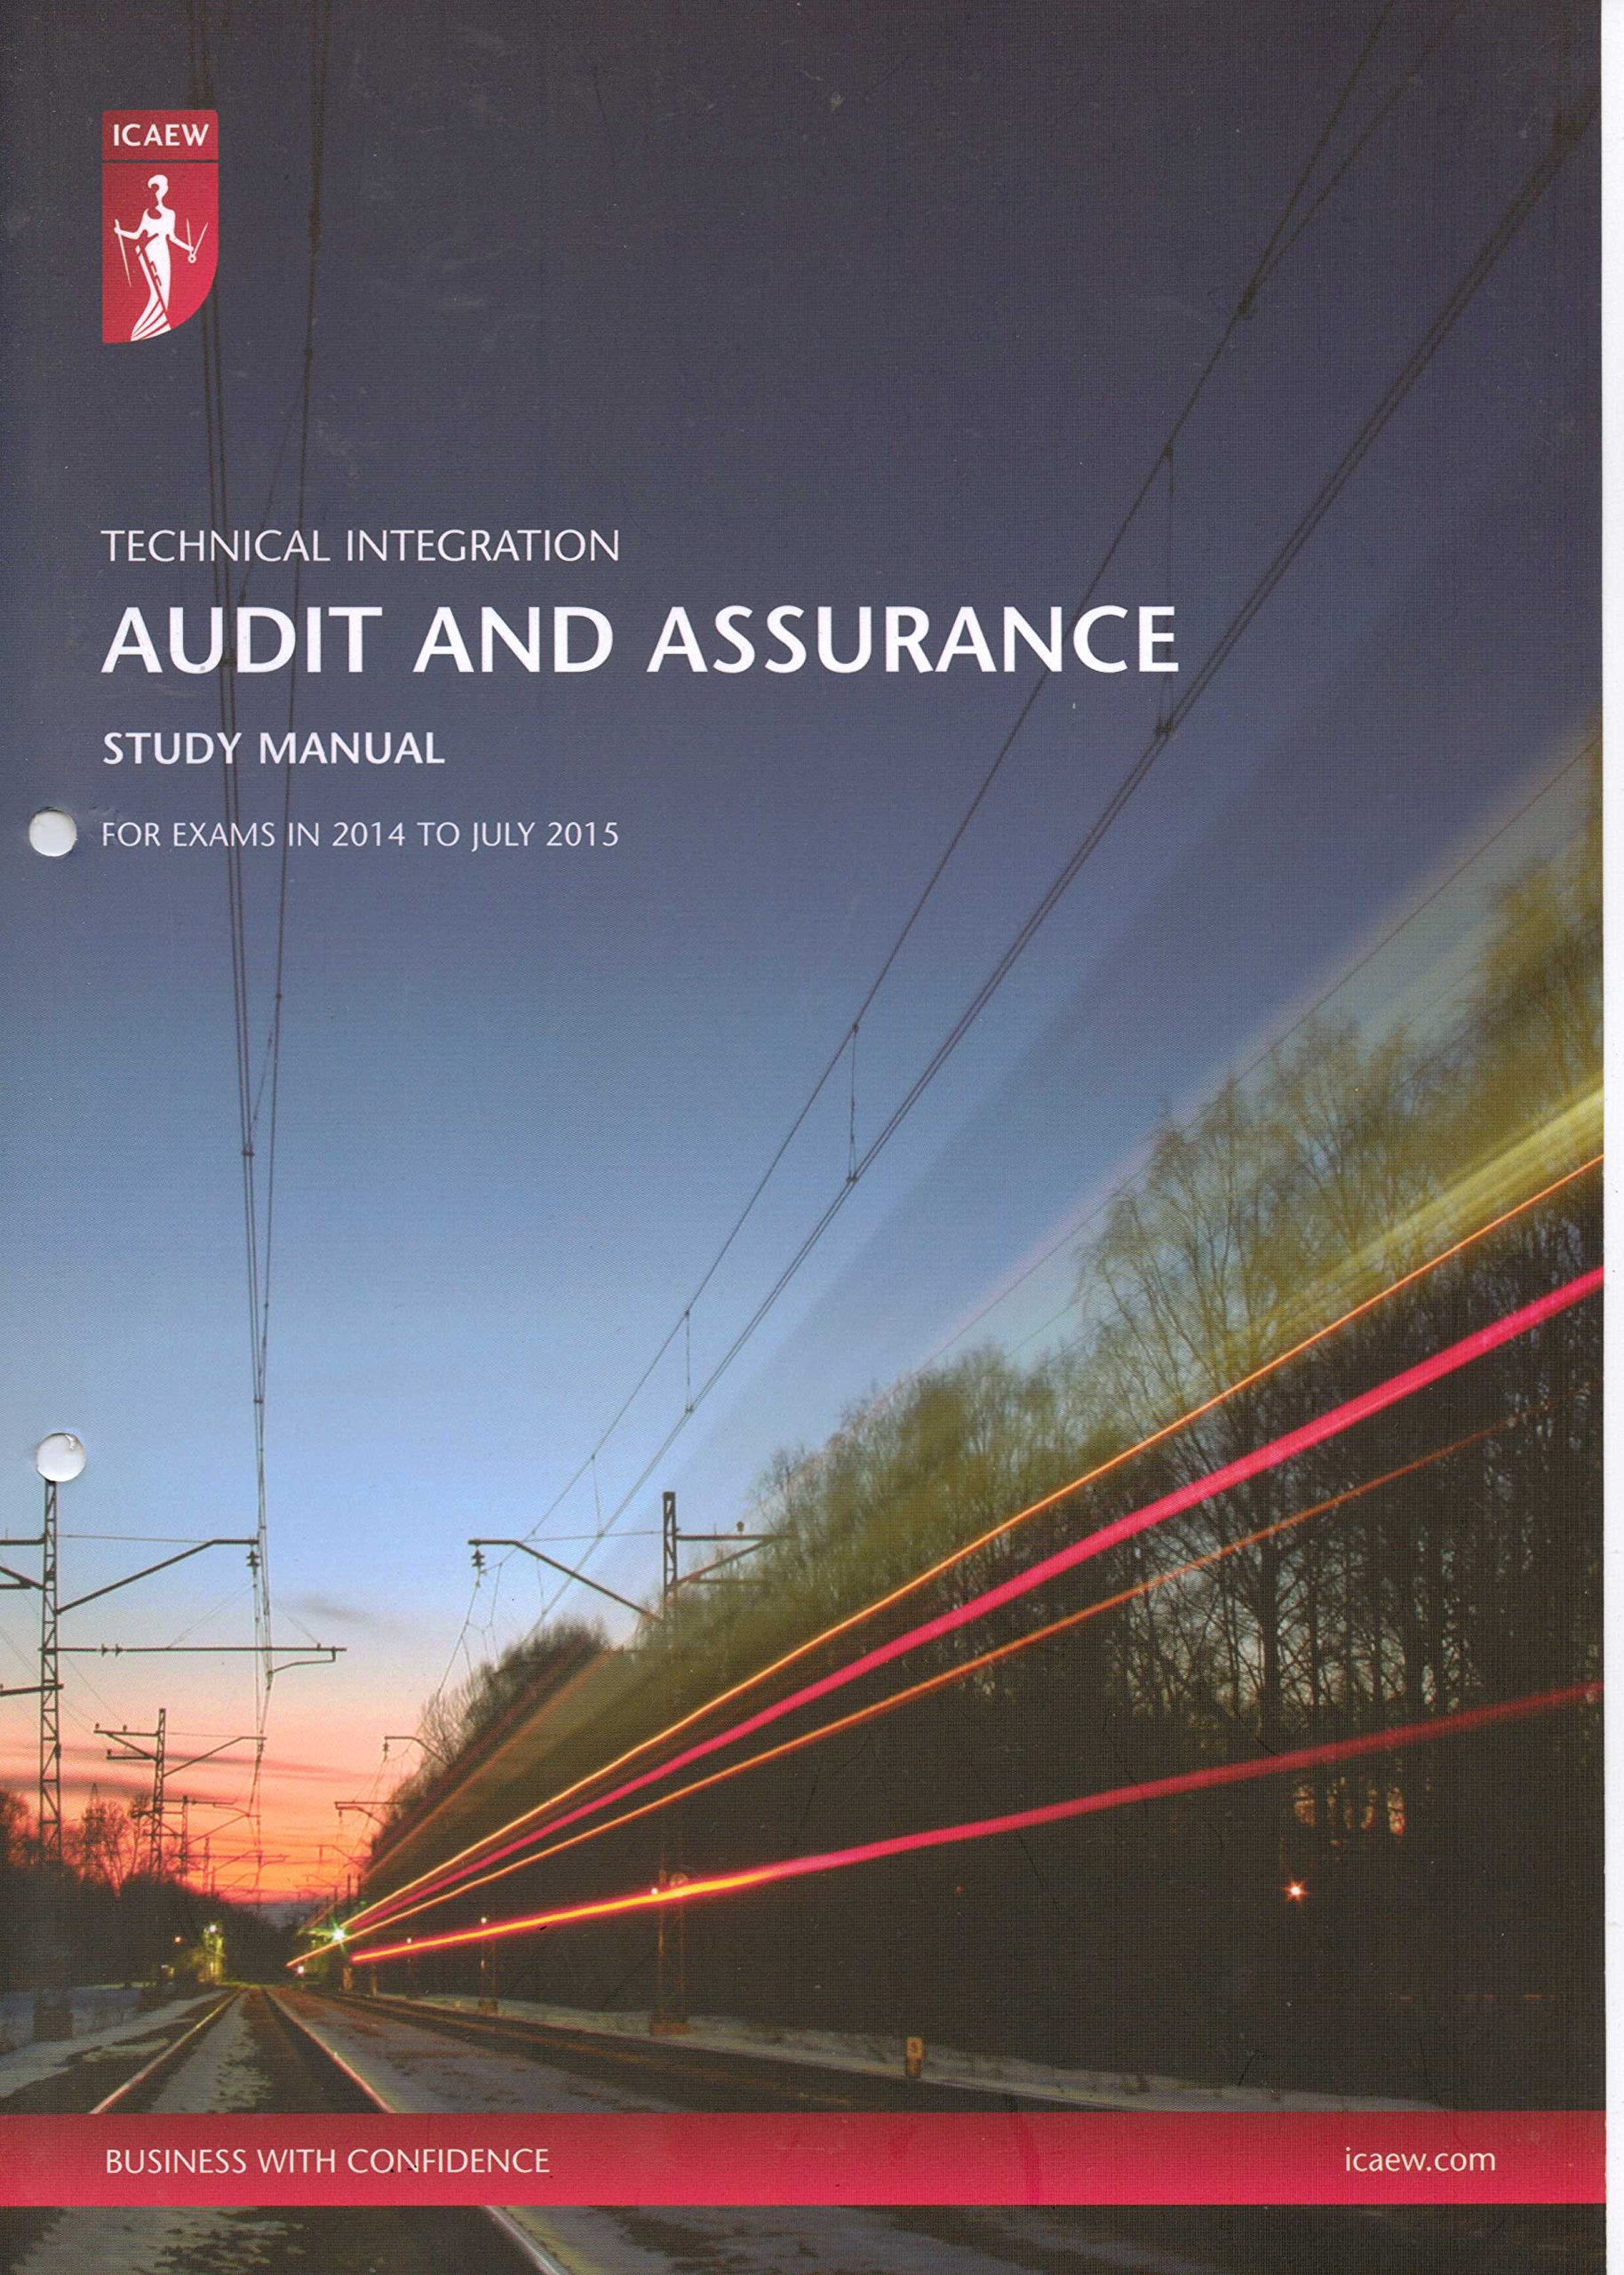 ICAEW Technical Integration - Audit and Assurance Study Manual 2014 to July  2015: Amazon.co.uk: ICAEW: 9780857608697: Books